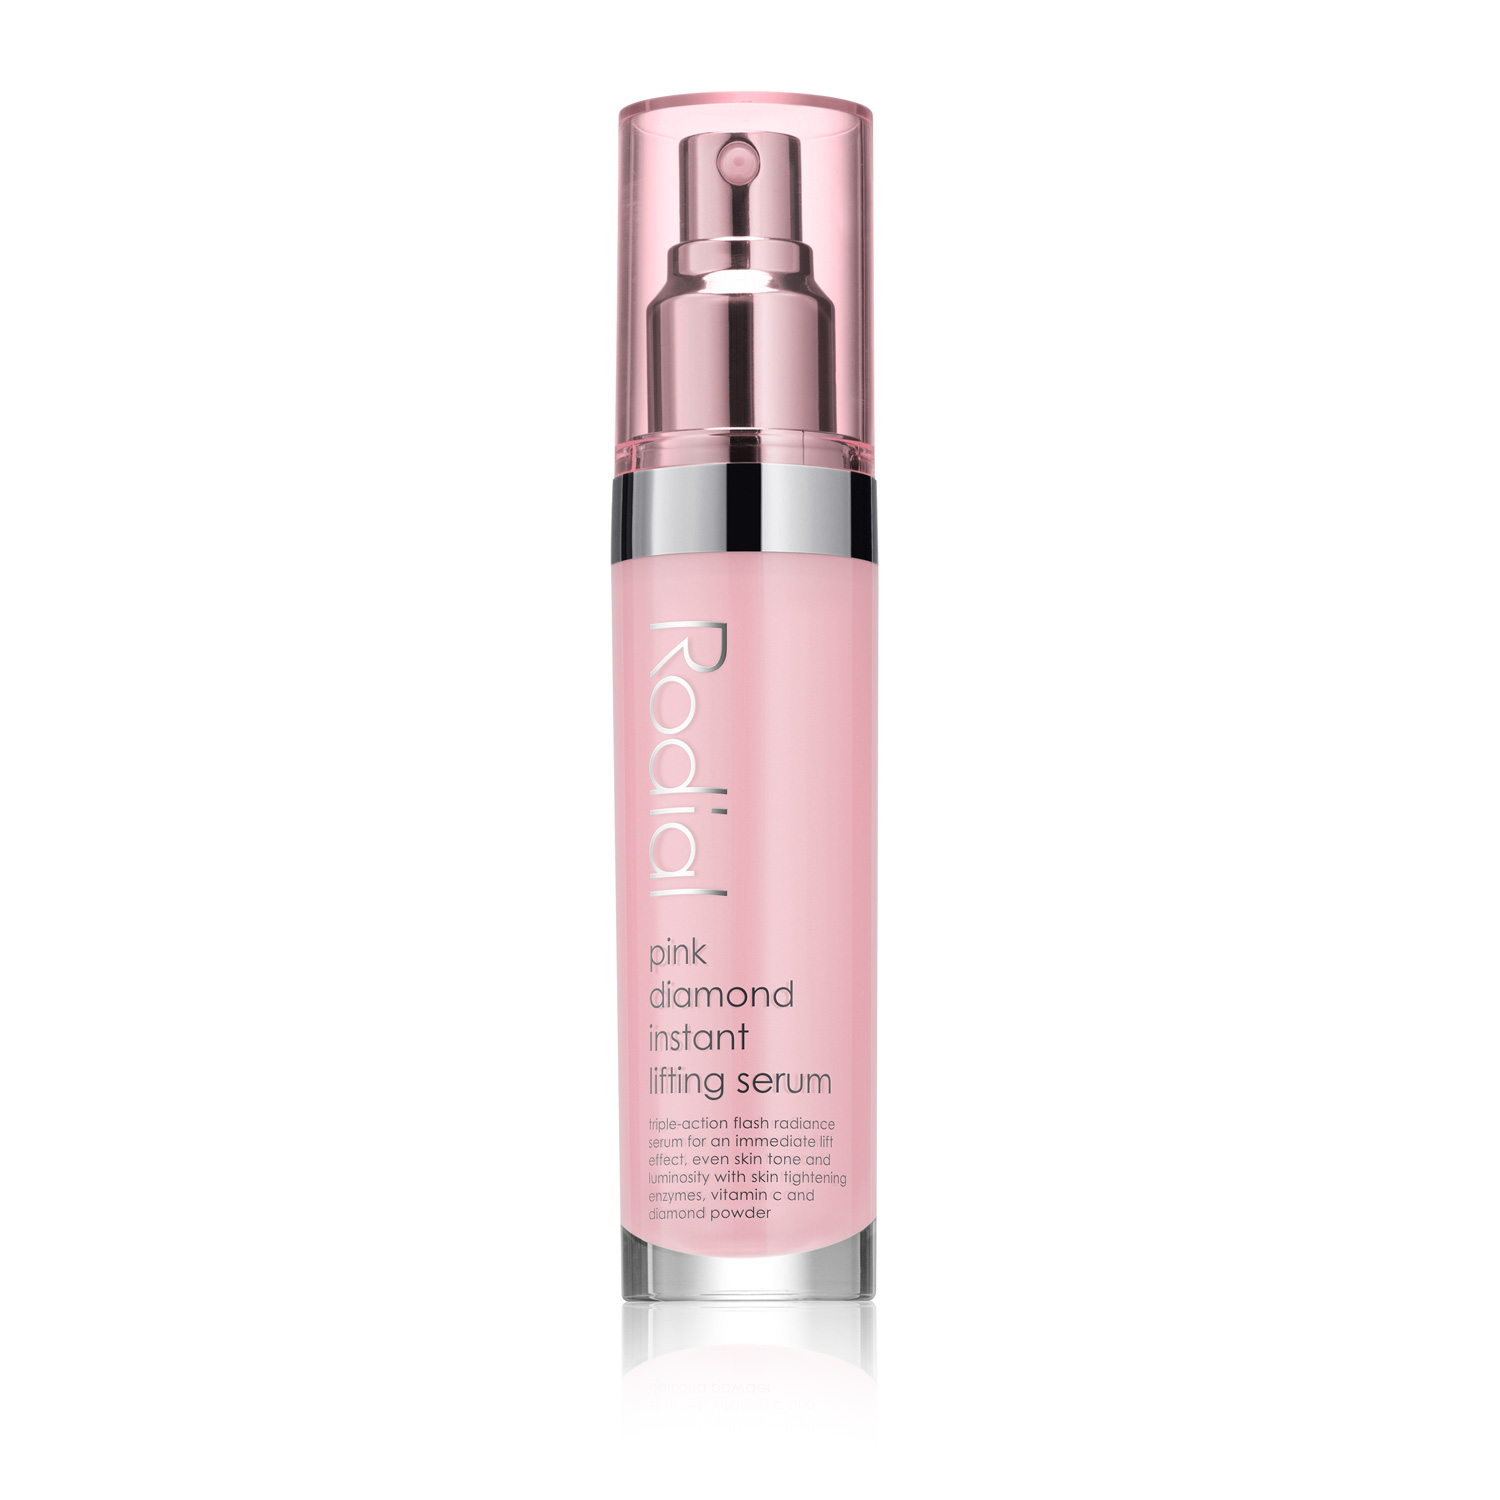 Pink Diamond Instant Lifting Serum Skincare By Rodial